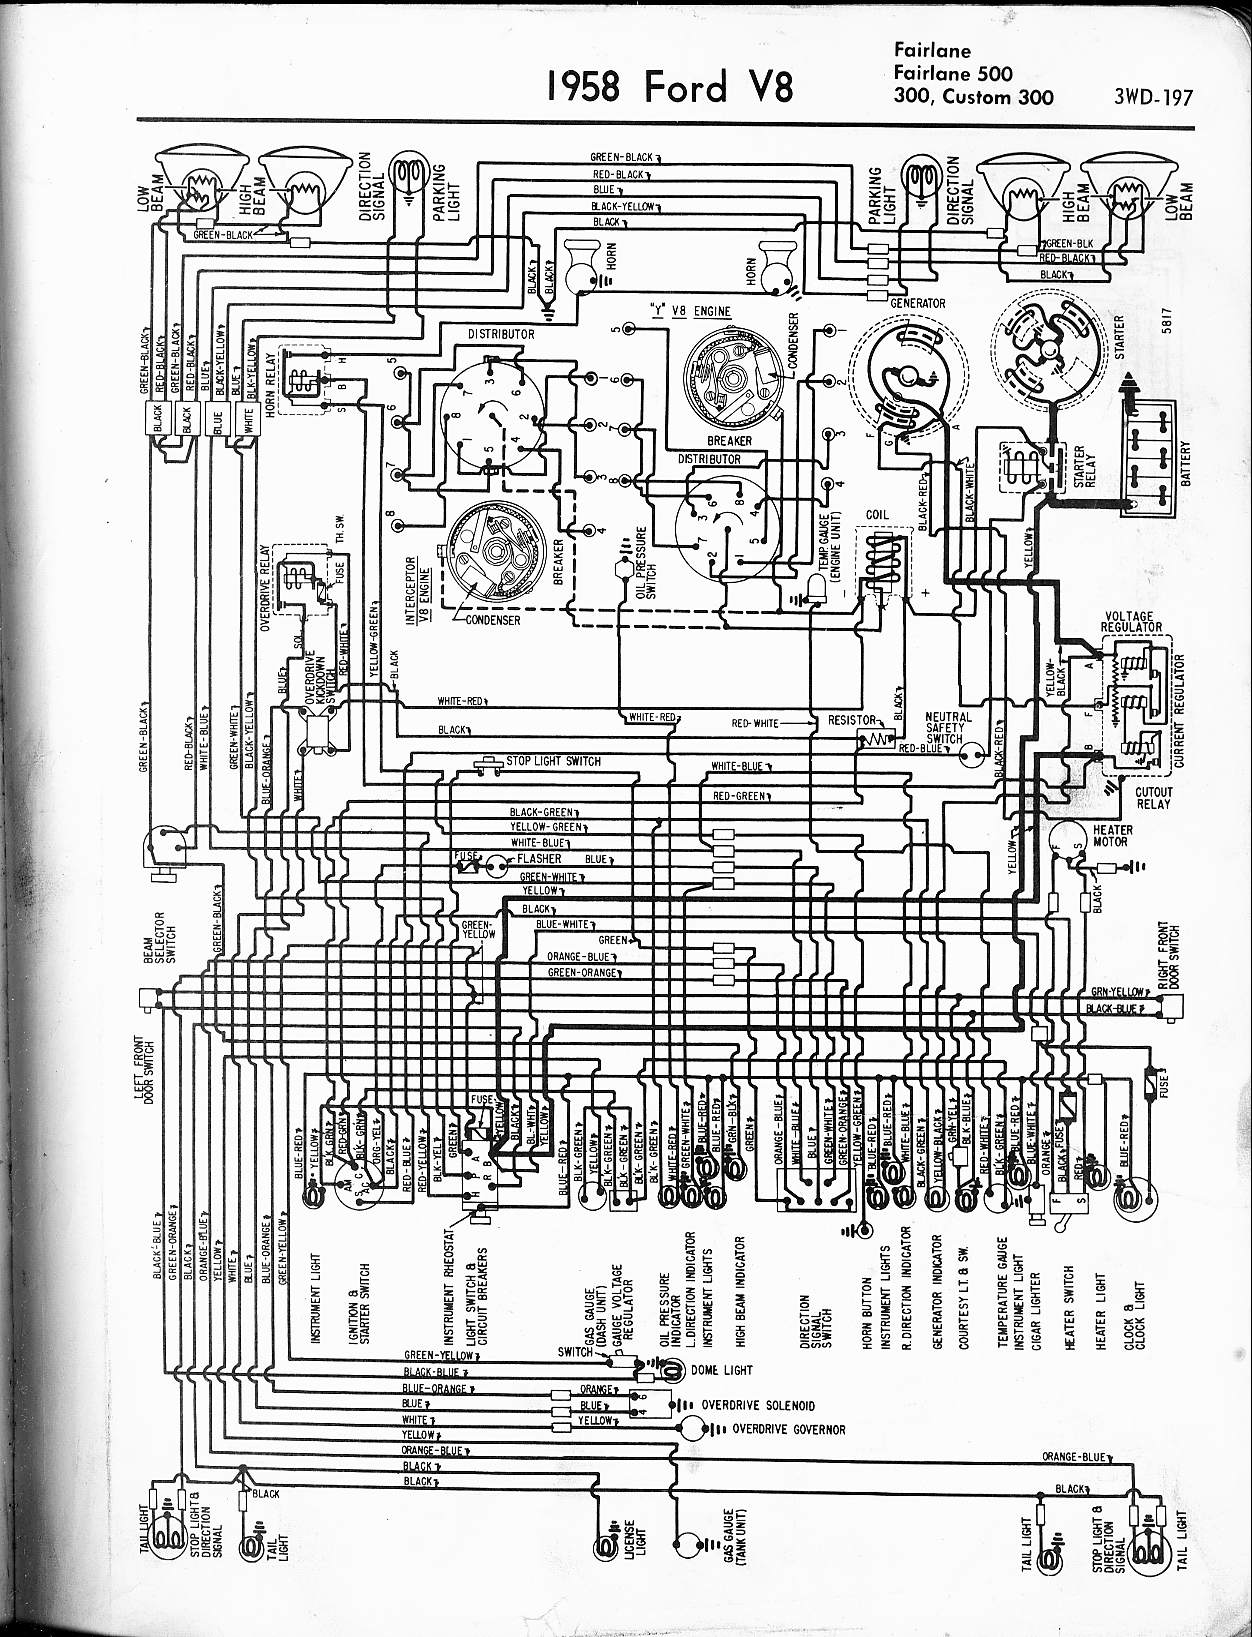 MWire5765 197 1974 ford f100 wiring diagram wiring diagram simonand wiring diagram for 1966 ford fairlane at gsmx.co